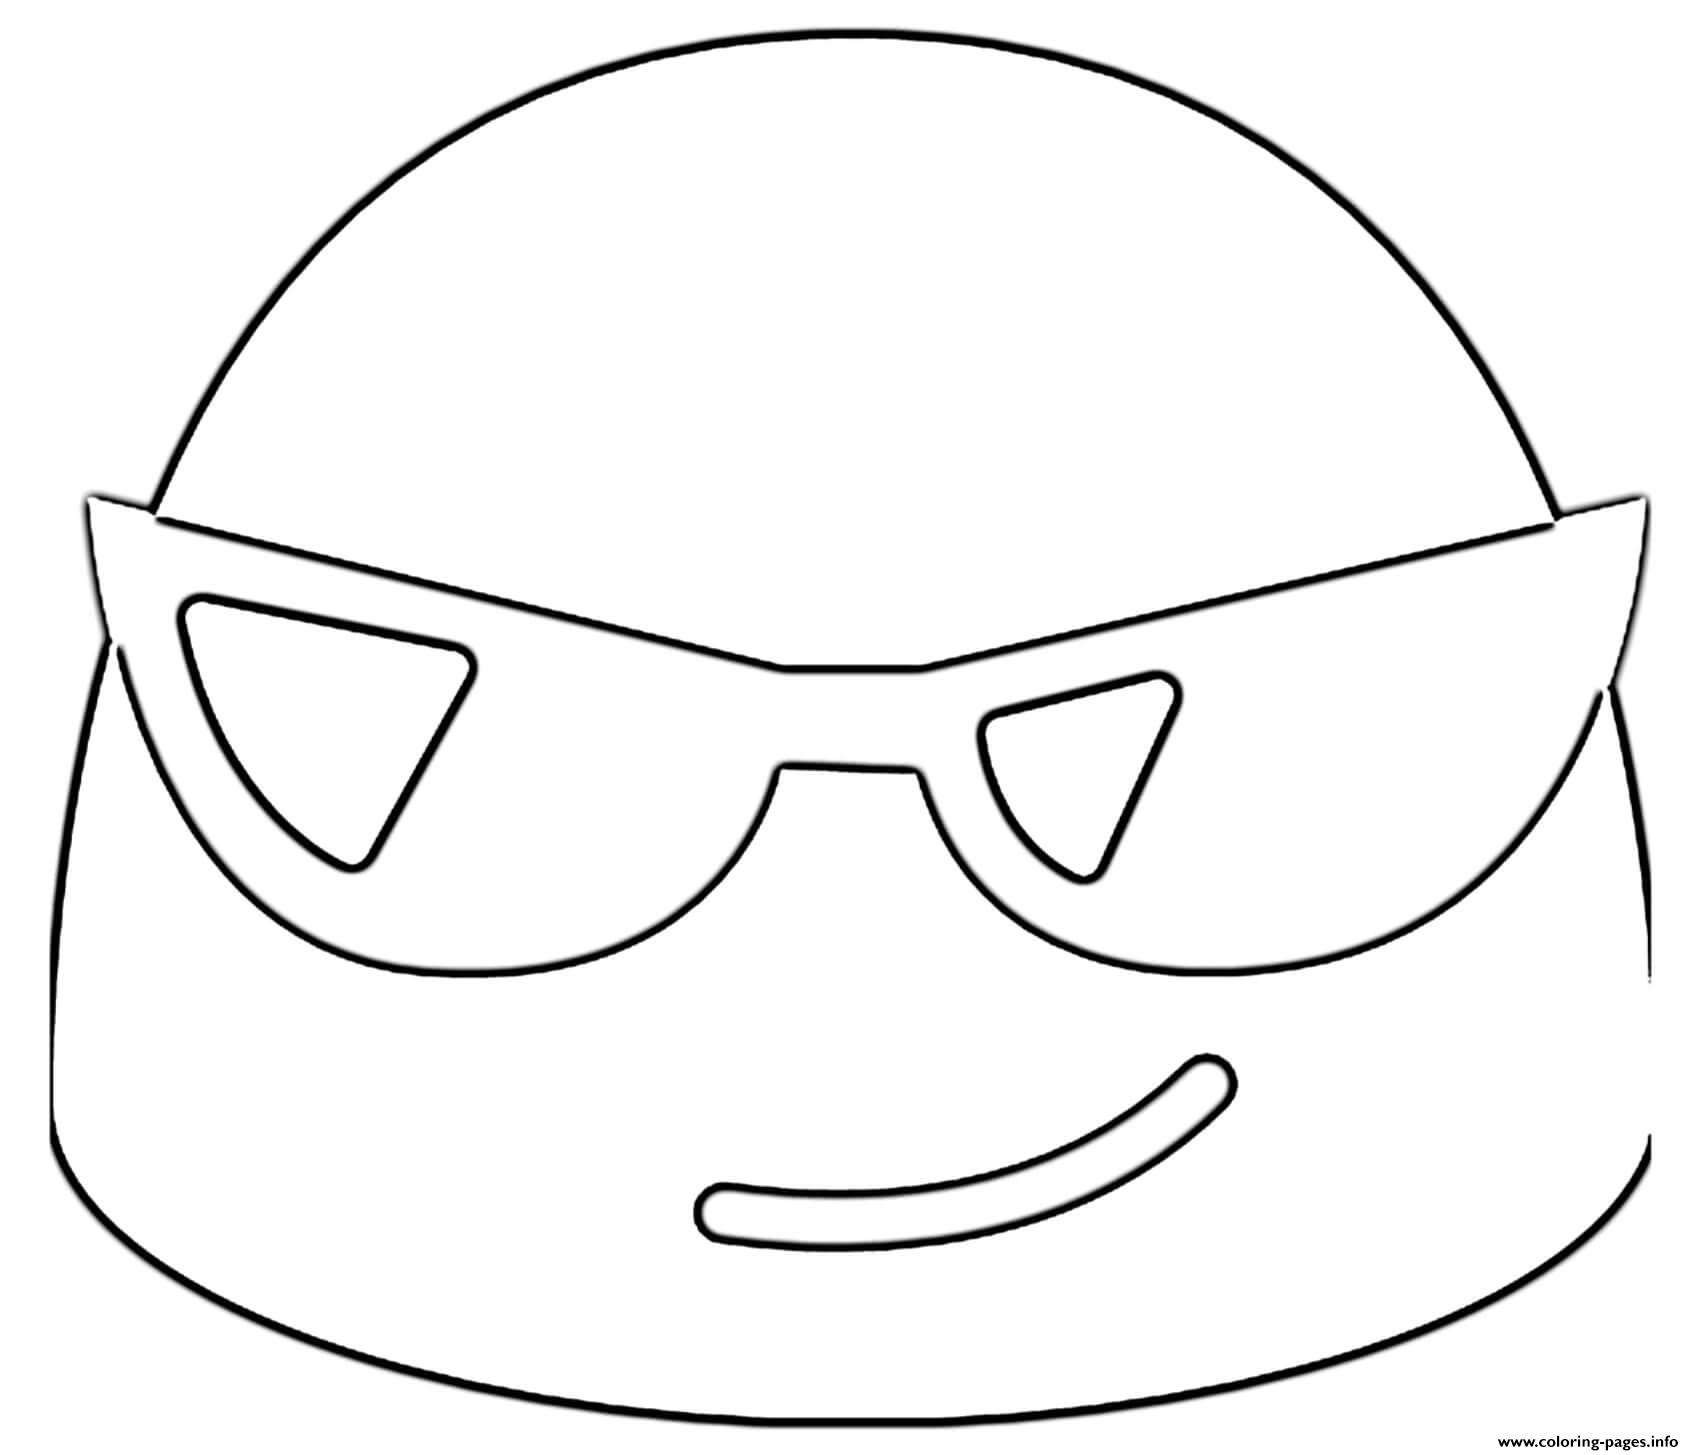 Google Emoji Sunglasses Coloring Pages Printable